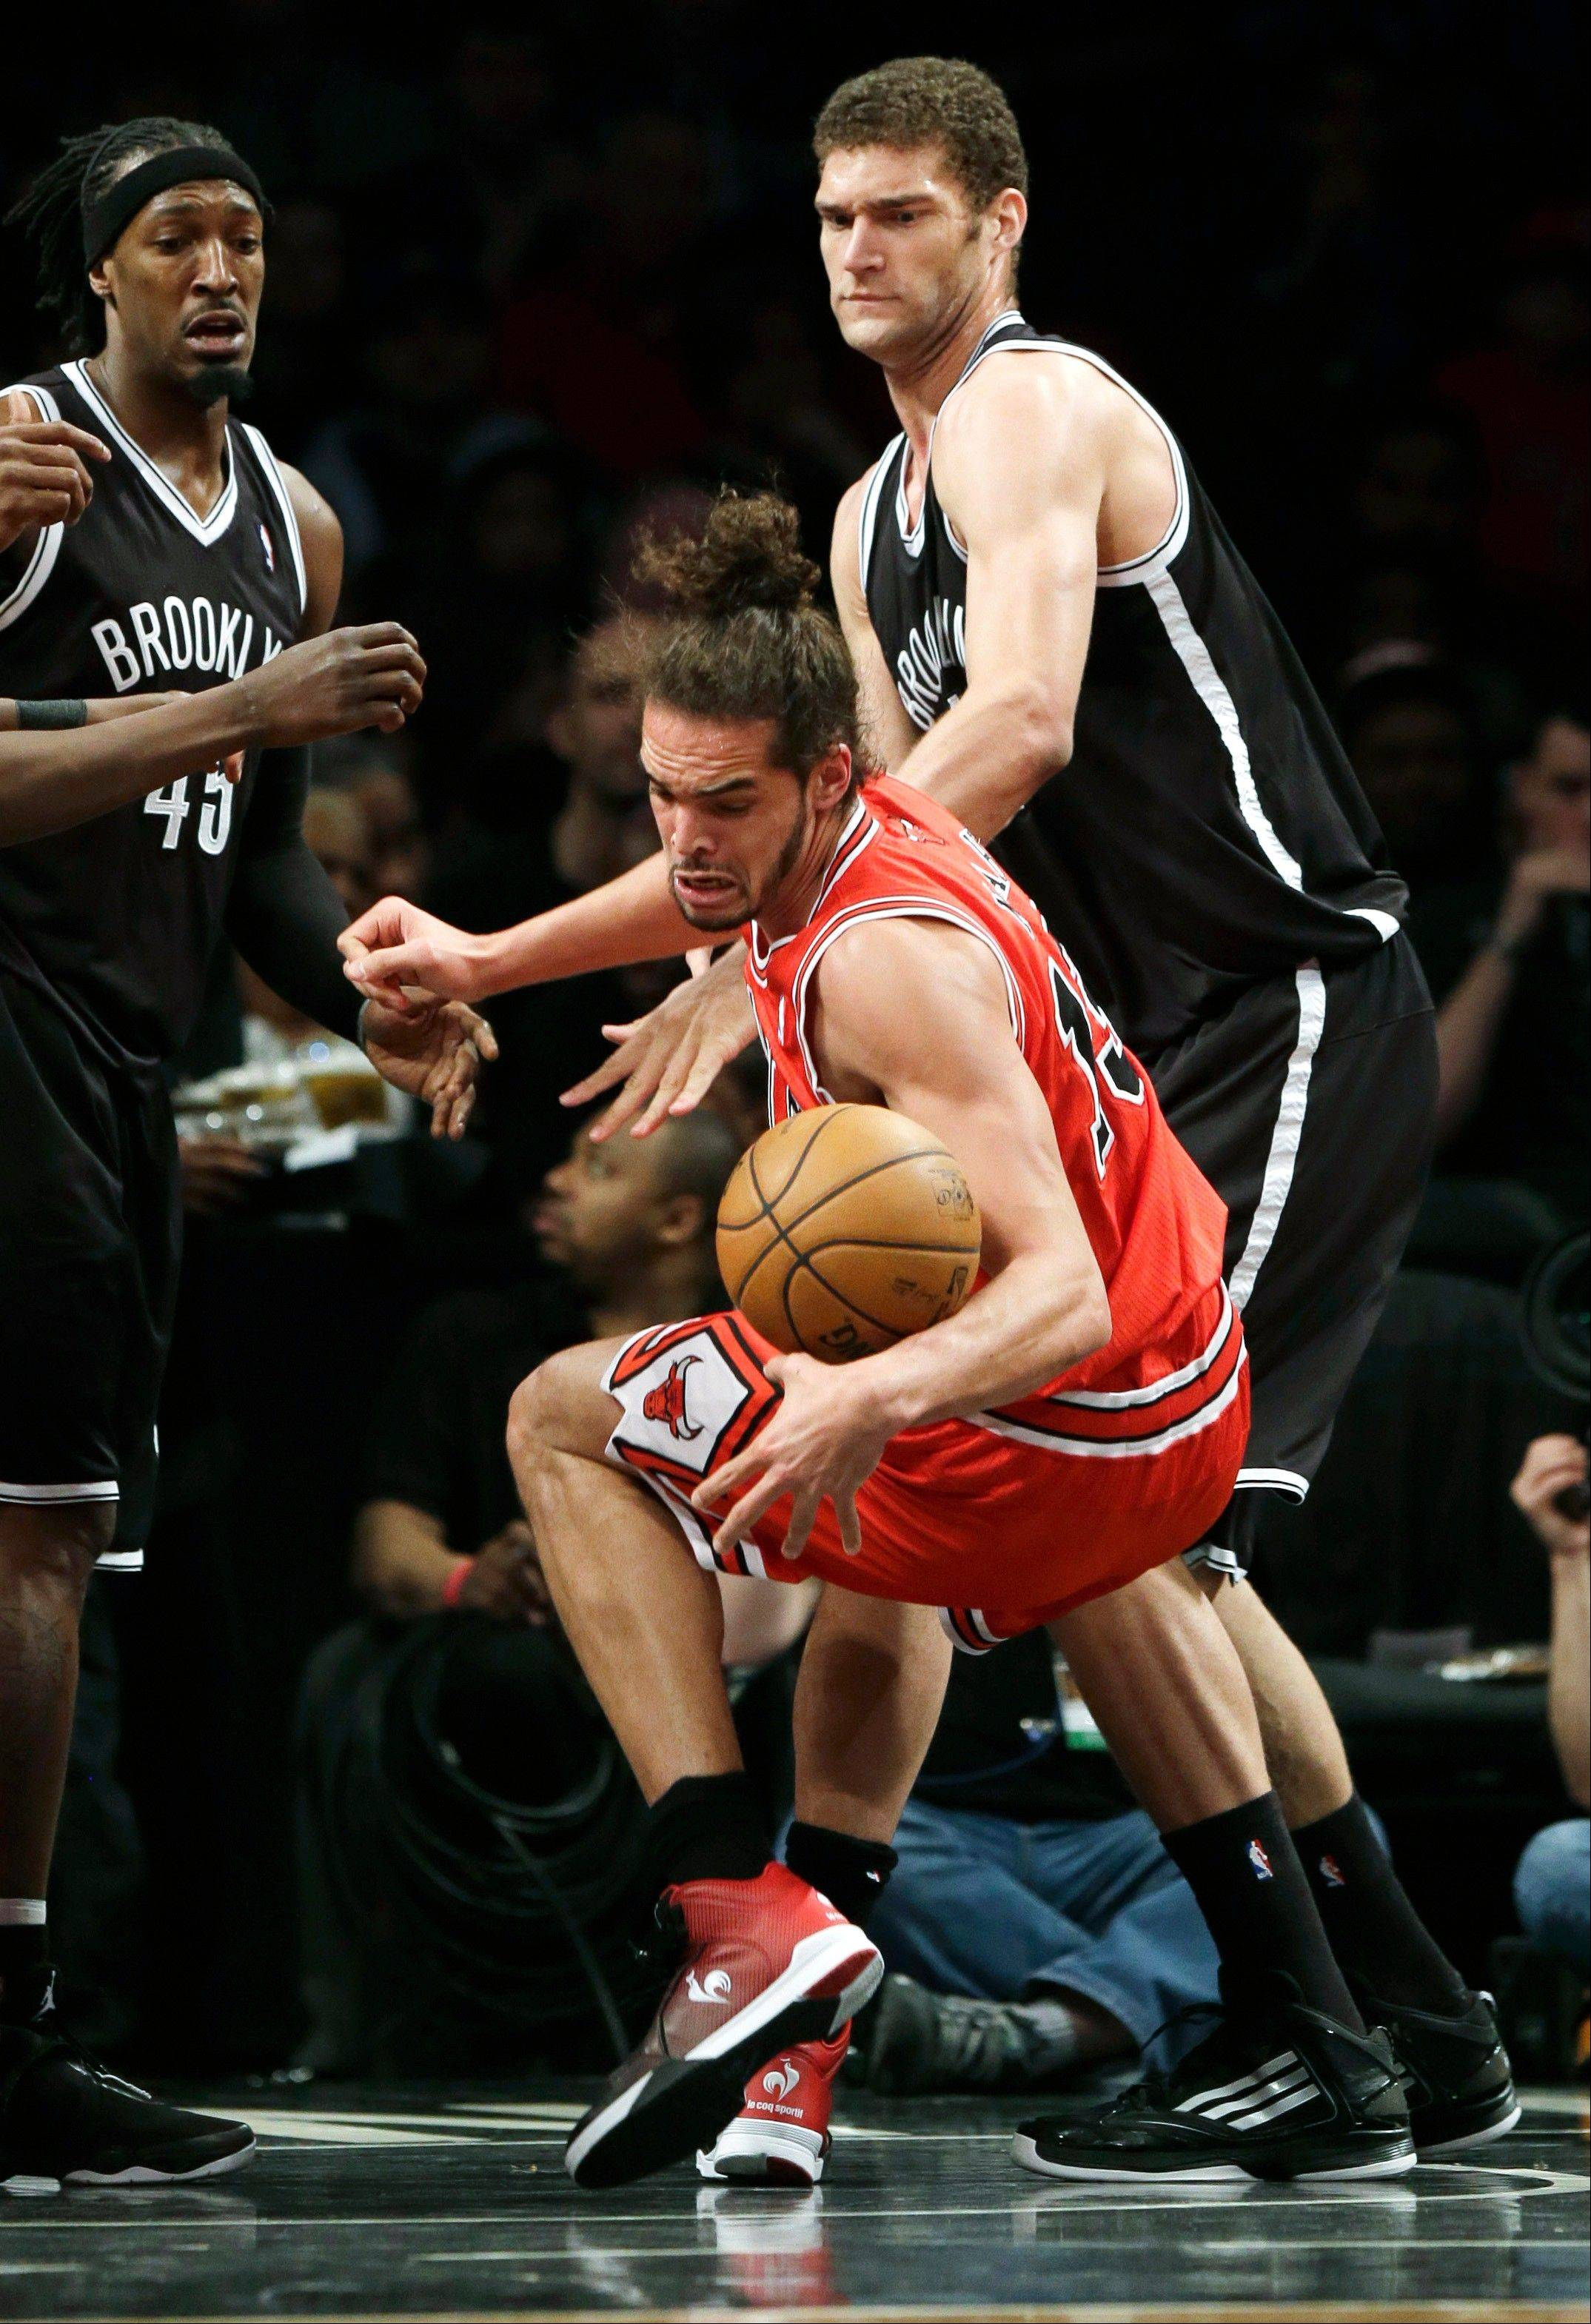 Brooklyn Nets' Brook Lopez, right, fouls the Bulls' Joakim Noah, center, while Nets' Gerald Wallace watches during the second half of Game 1 in a first-round NBA basketball playoff series, Saturday, April 20, 2013 in New York. The Nets beat the Bulls 106-89.